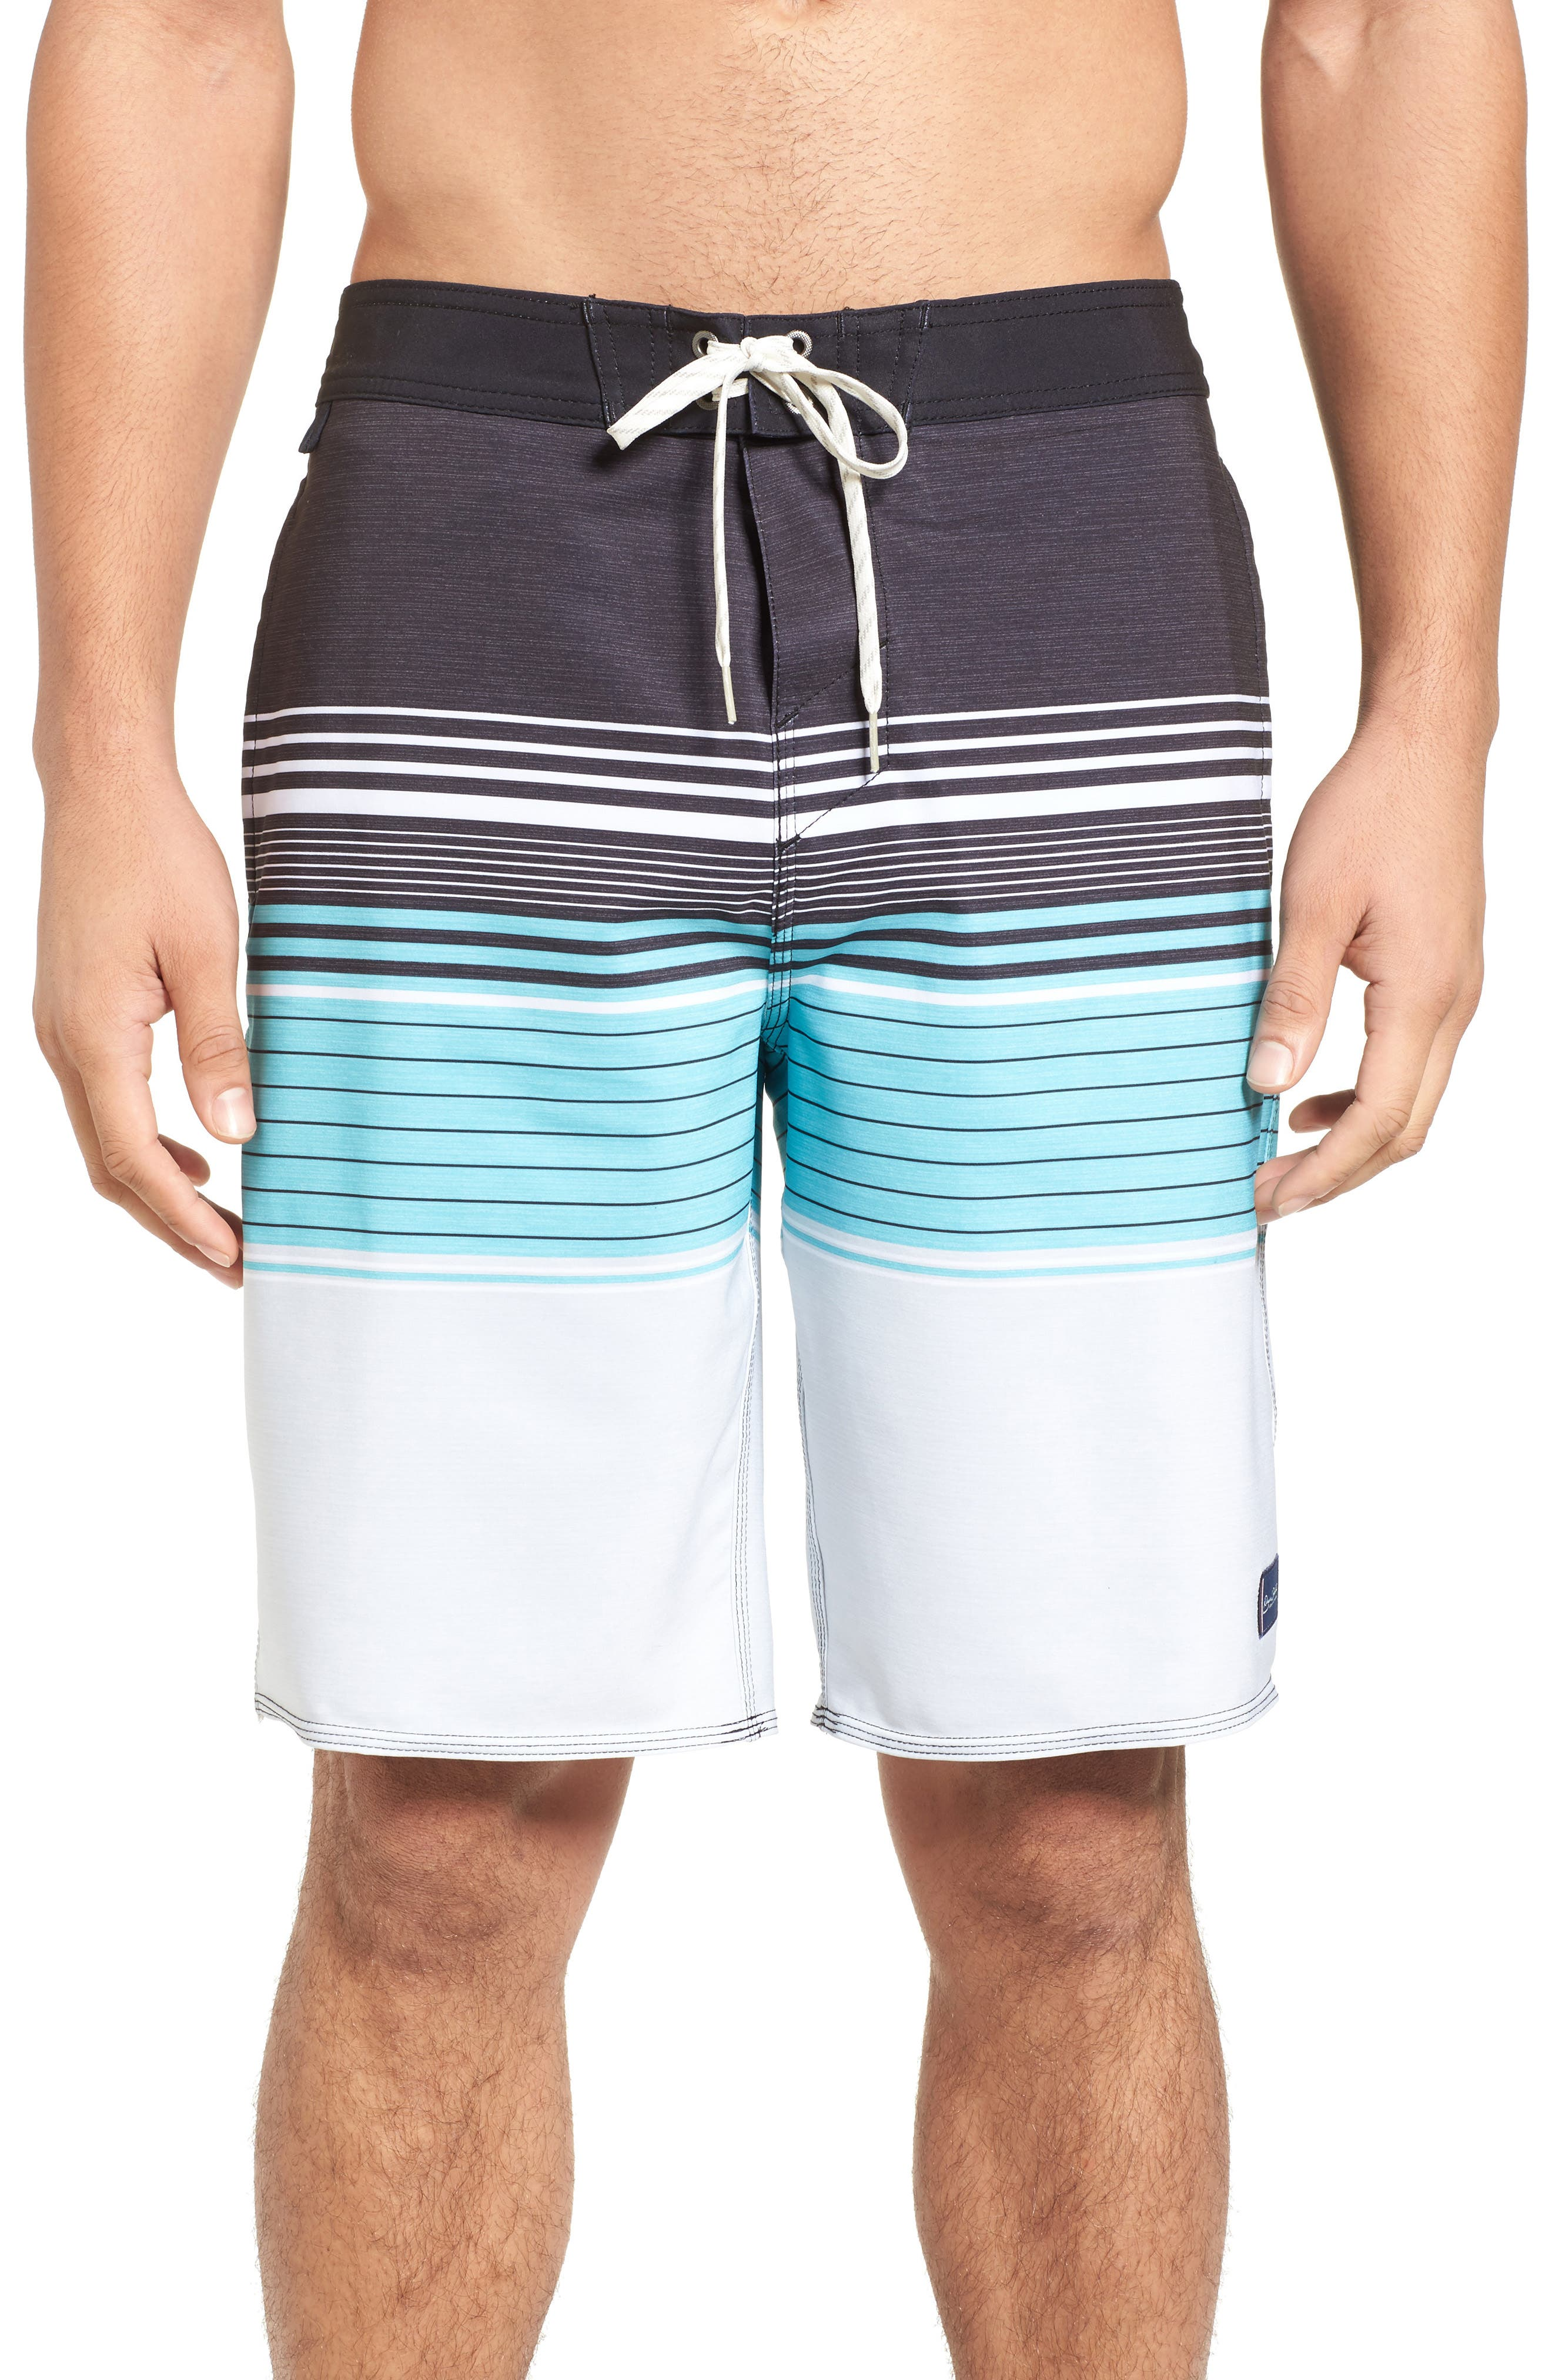 Frontiers Stretch Board Shorts,                             Main thumbnail 1, color,                             001